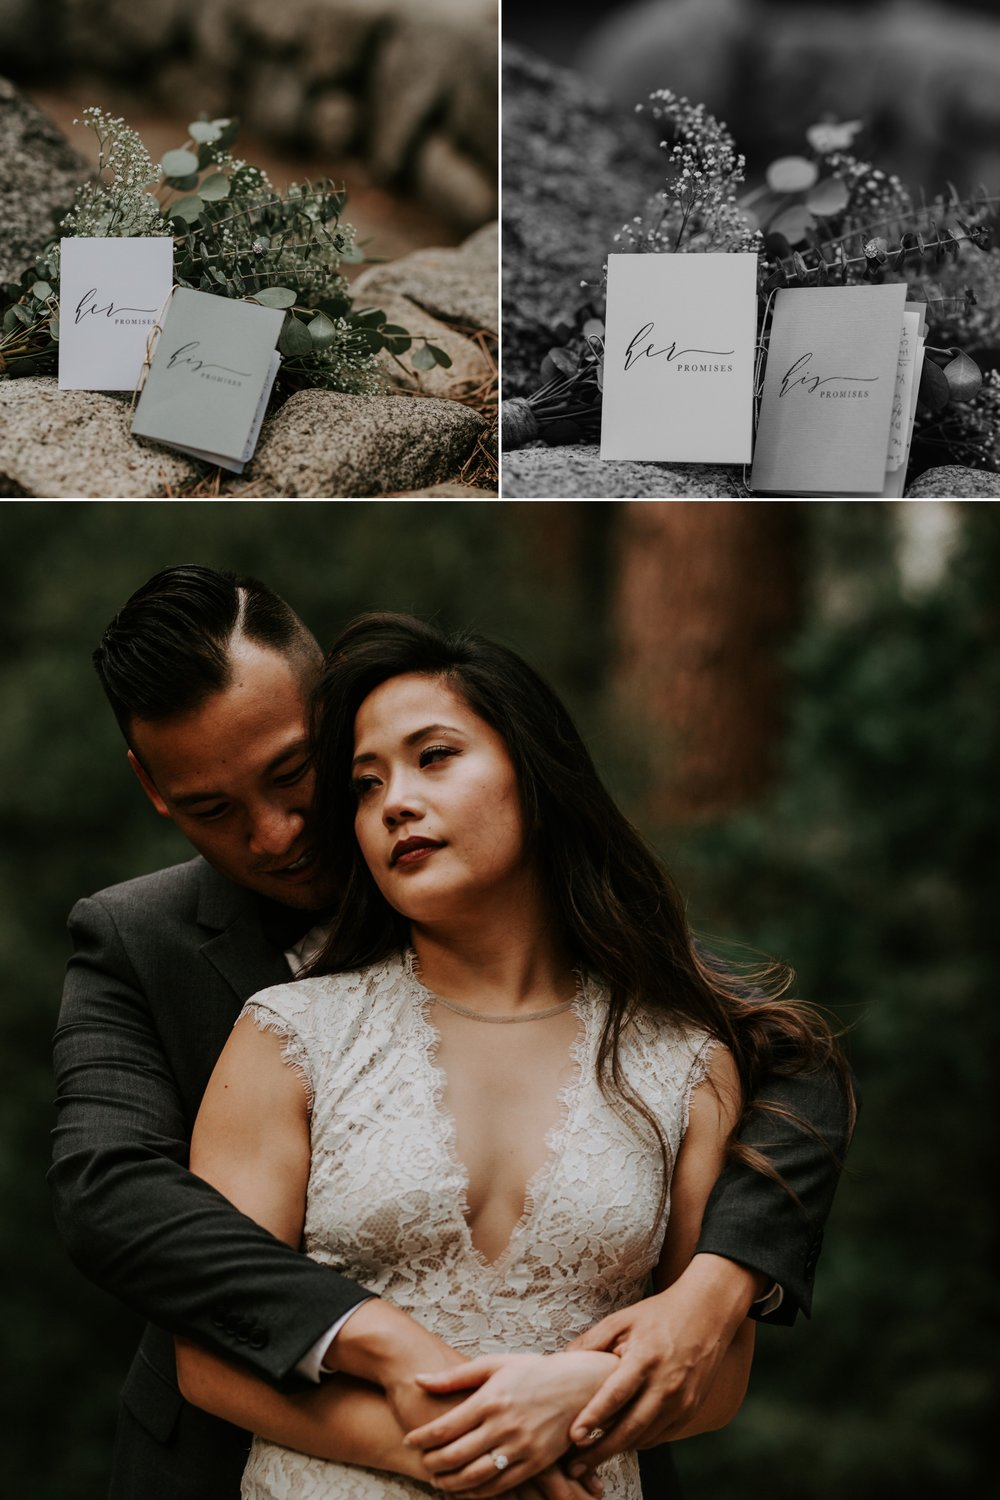 Yosemite-Elopement-Photographer11.jpg